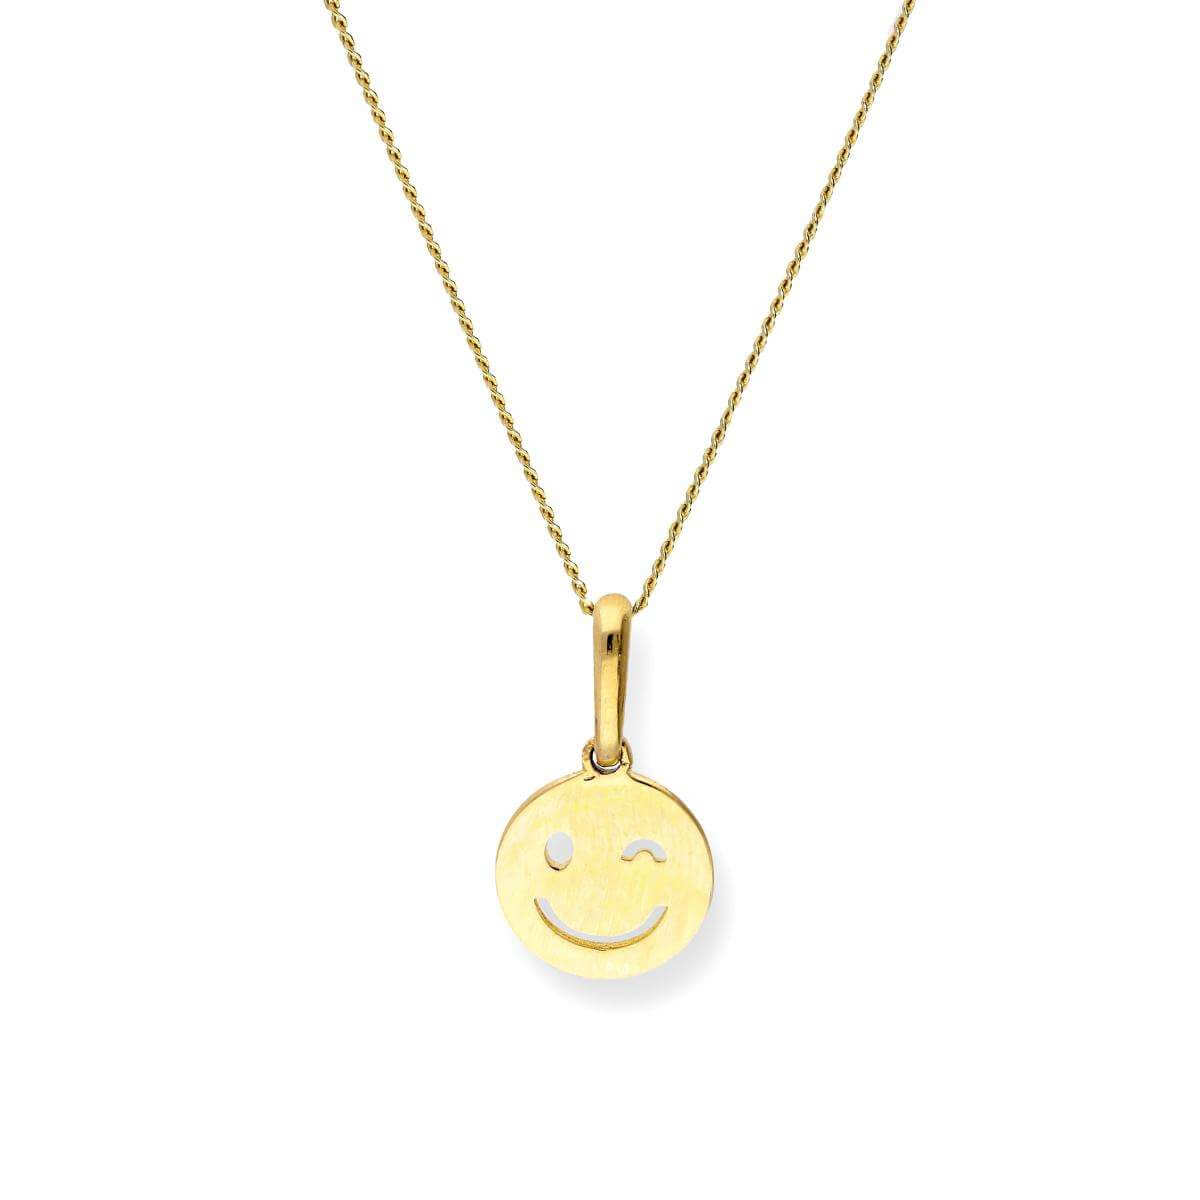 9ct Gold Winking Smiley Face Pendant Necklace